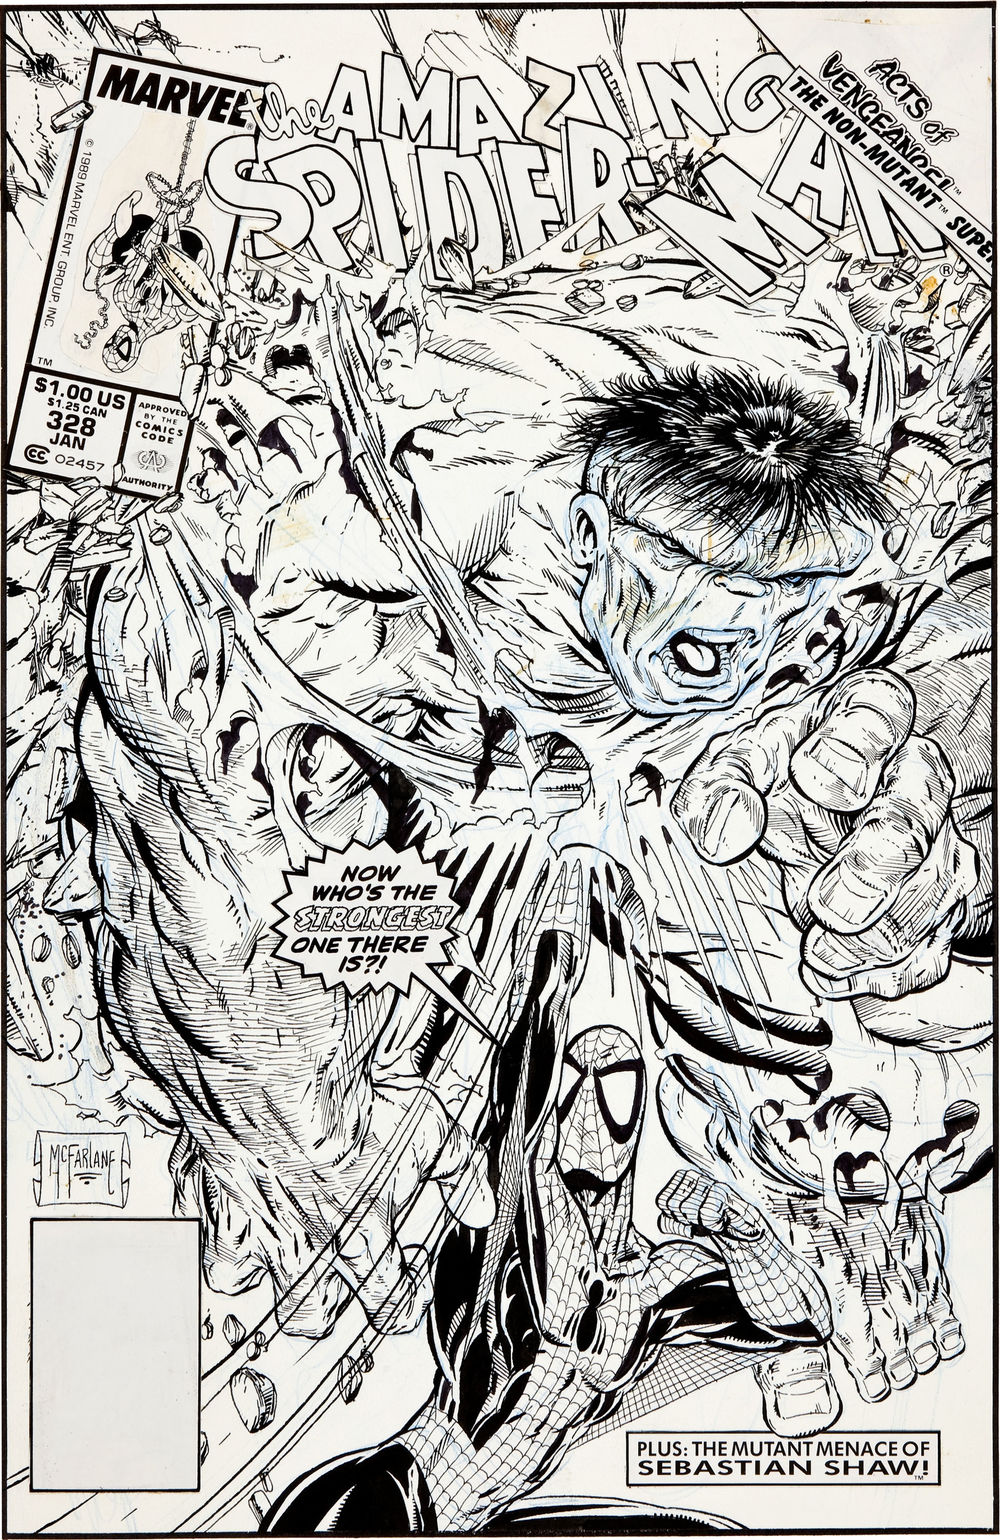 Todd McFarlane Original SPIDERMAN